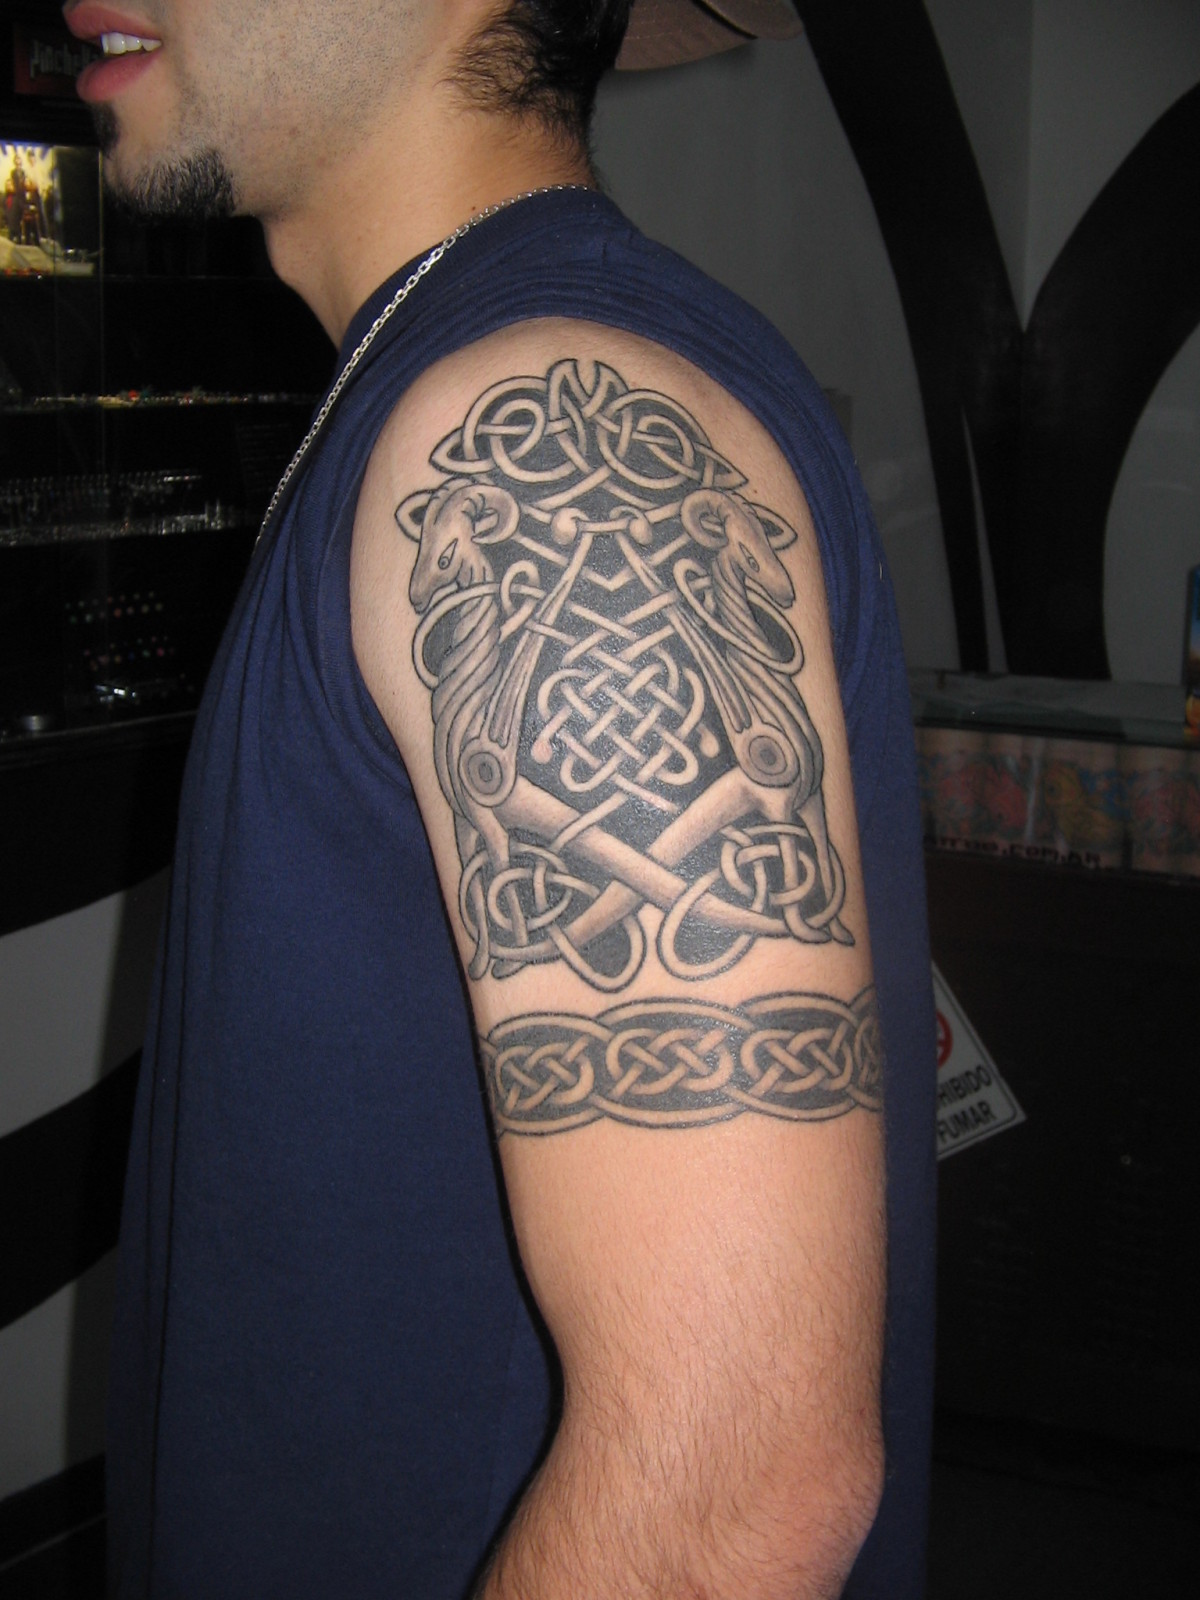 Tribal Arm Tattoo New Style For College Boys Yusrablog Com